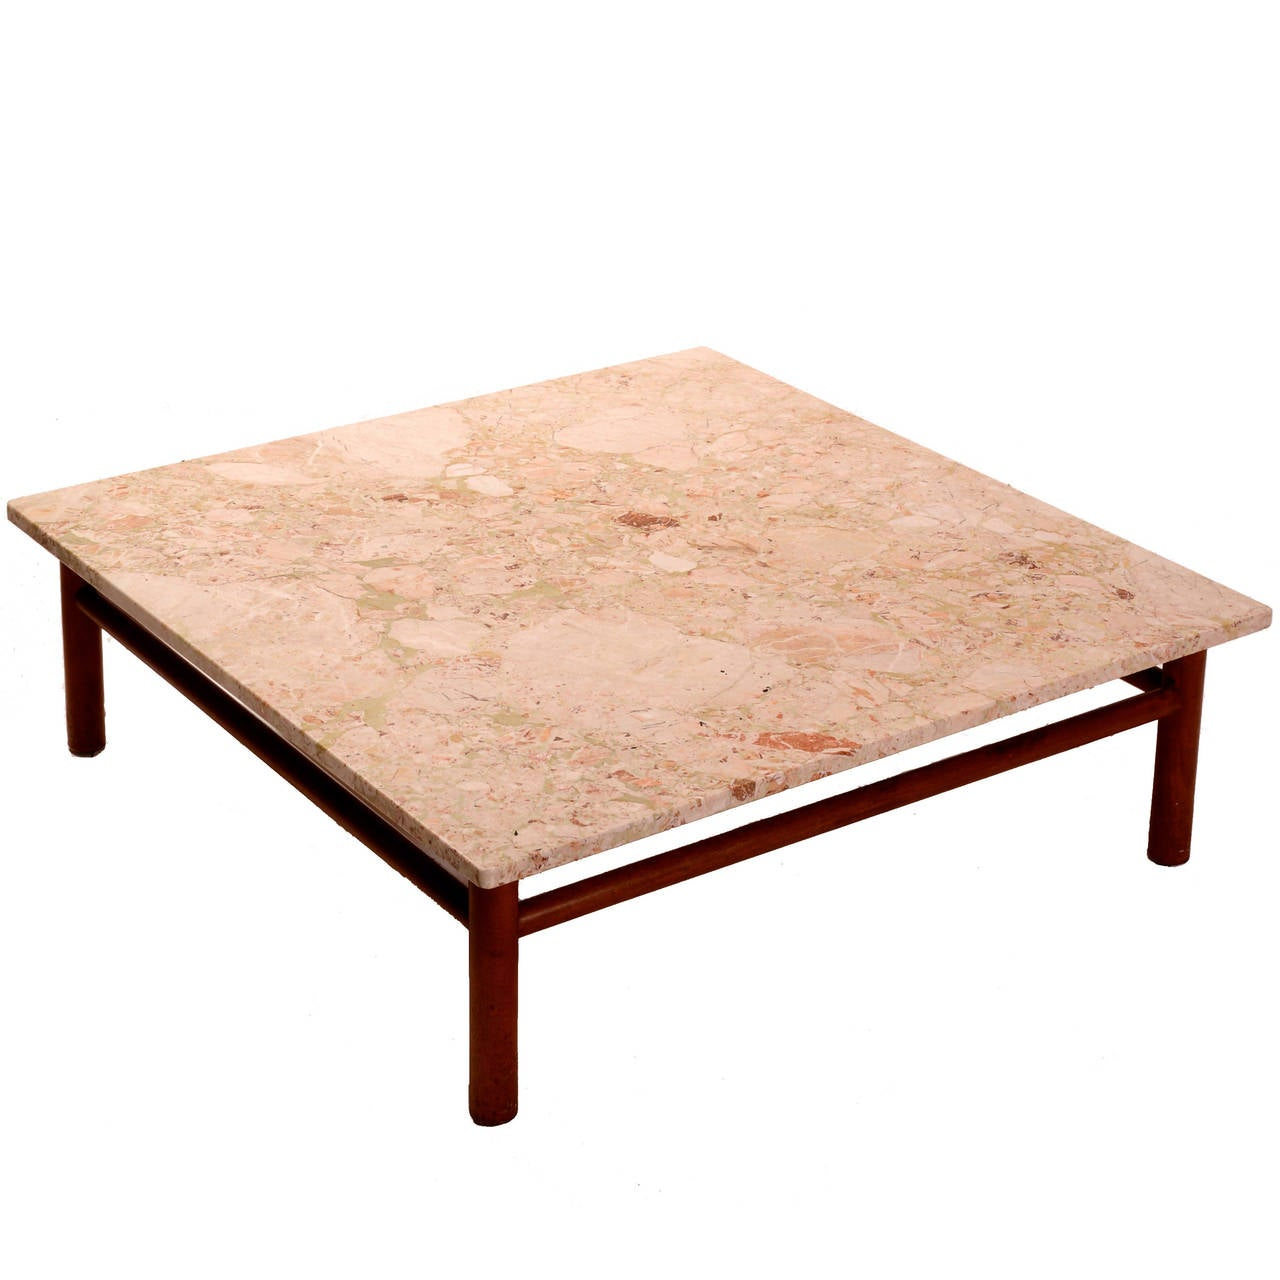 Marble top coffe table by t h robsjohn gibbings for for Marble top coffee table